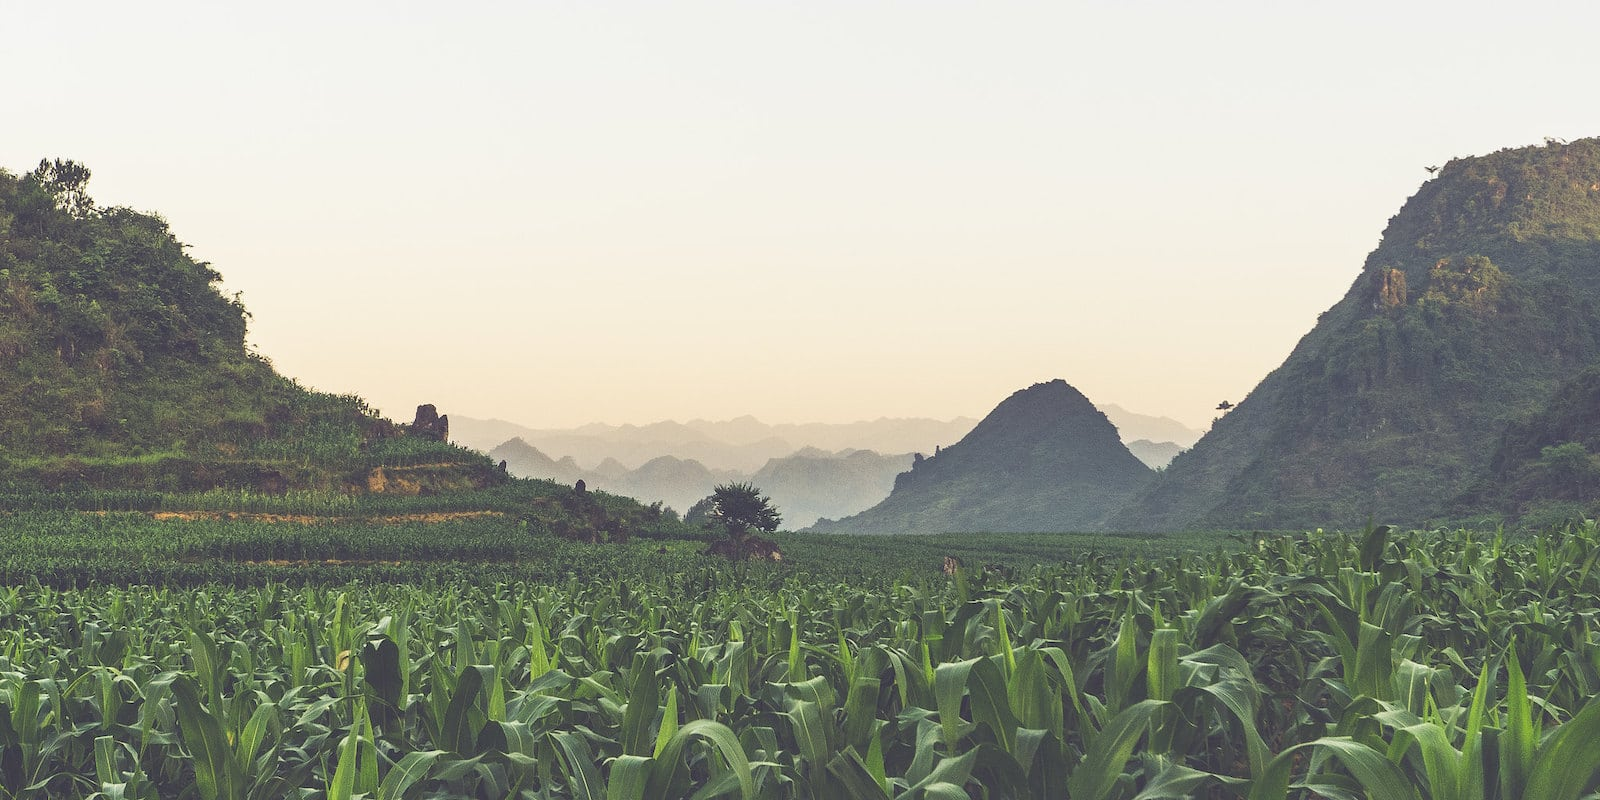 Image of a cornfield in Tam Son, Ha Giang, Vietnam